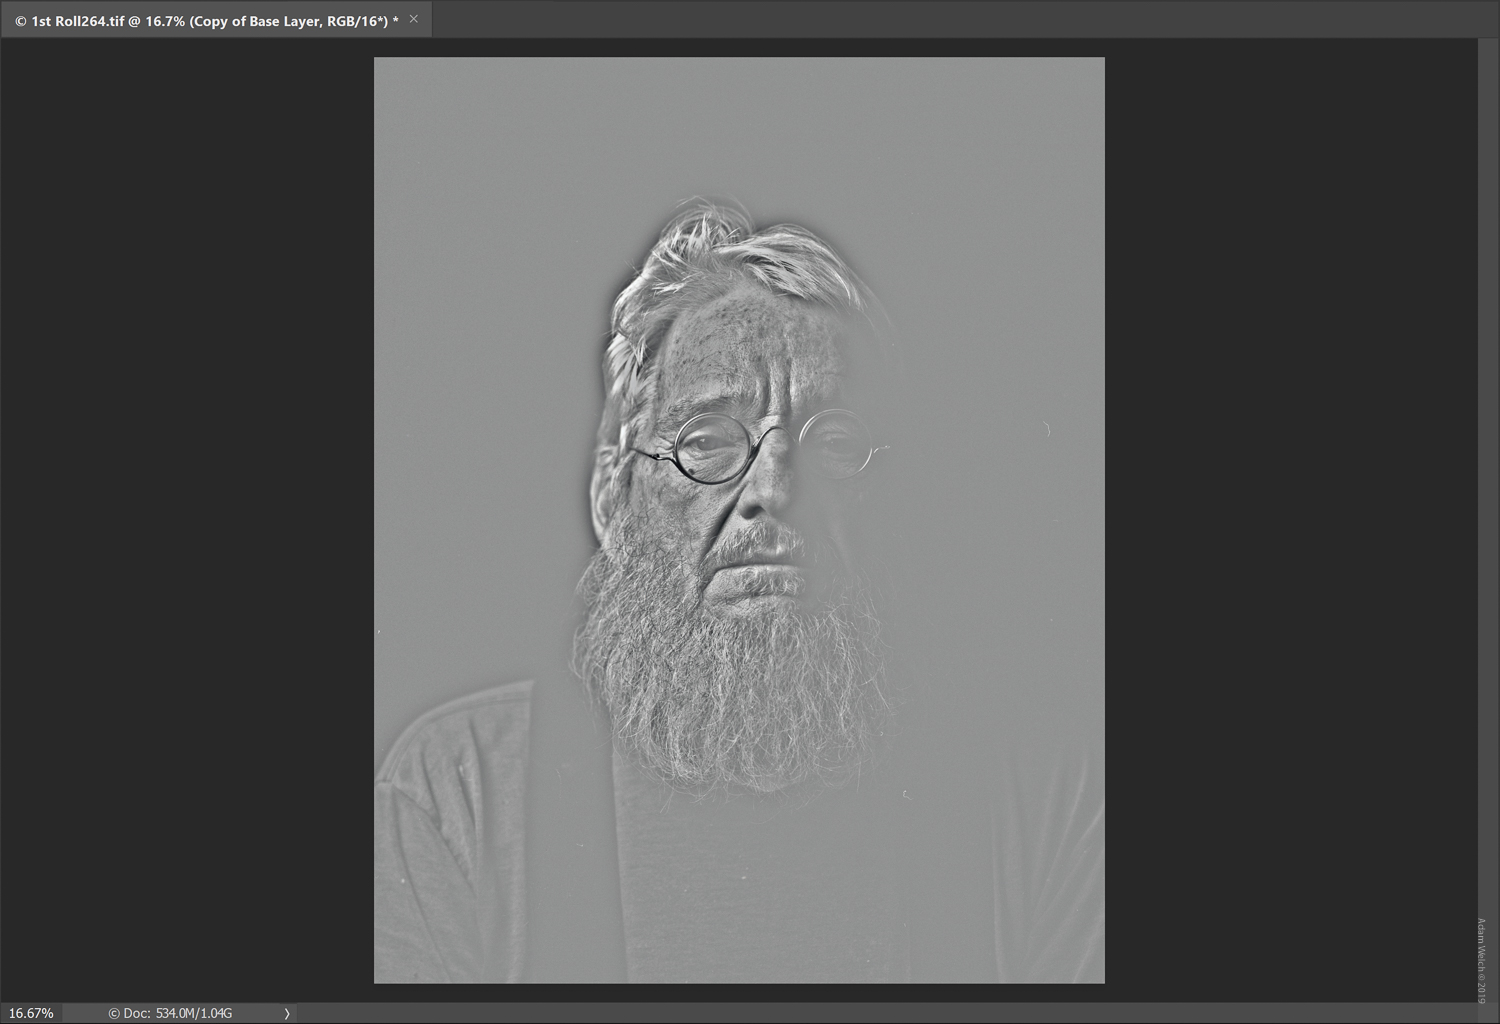 Easy-Skin-Smoothing-Using-the-High-Pass-Filter-in-Photoshop